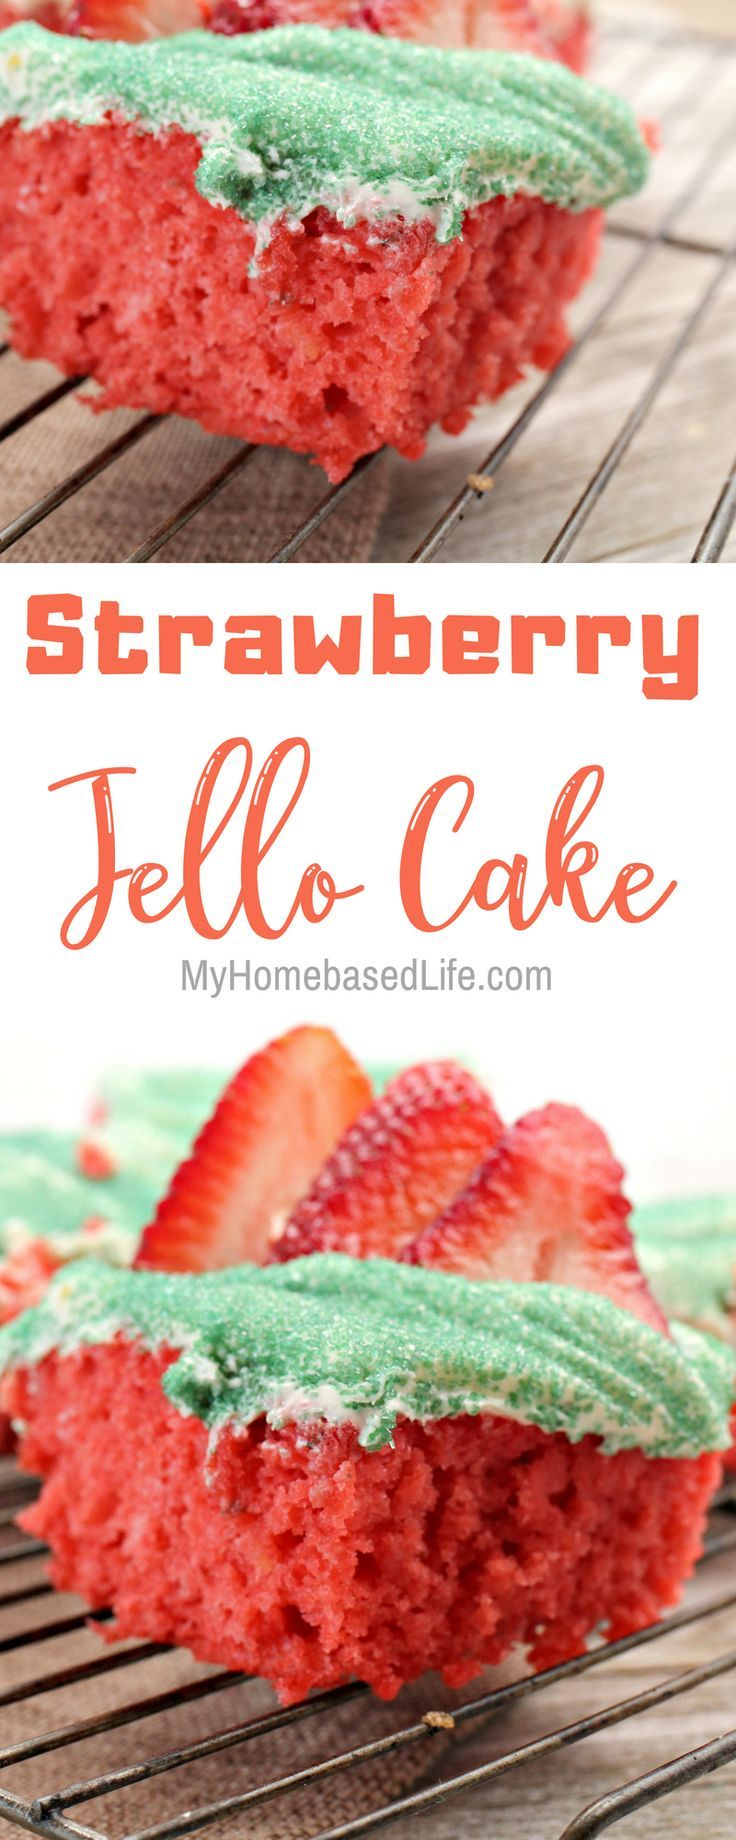 how to make jello cake